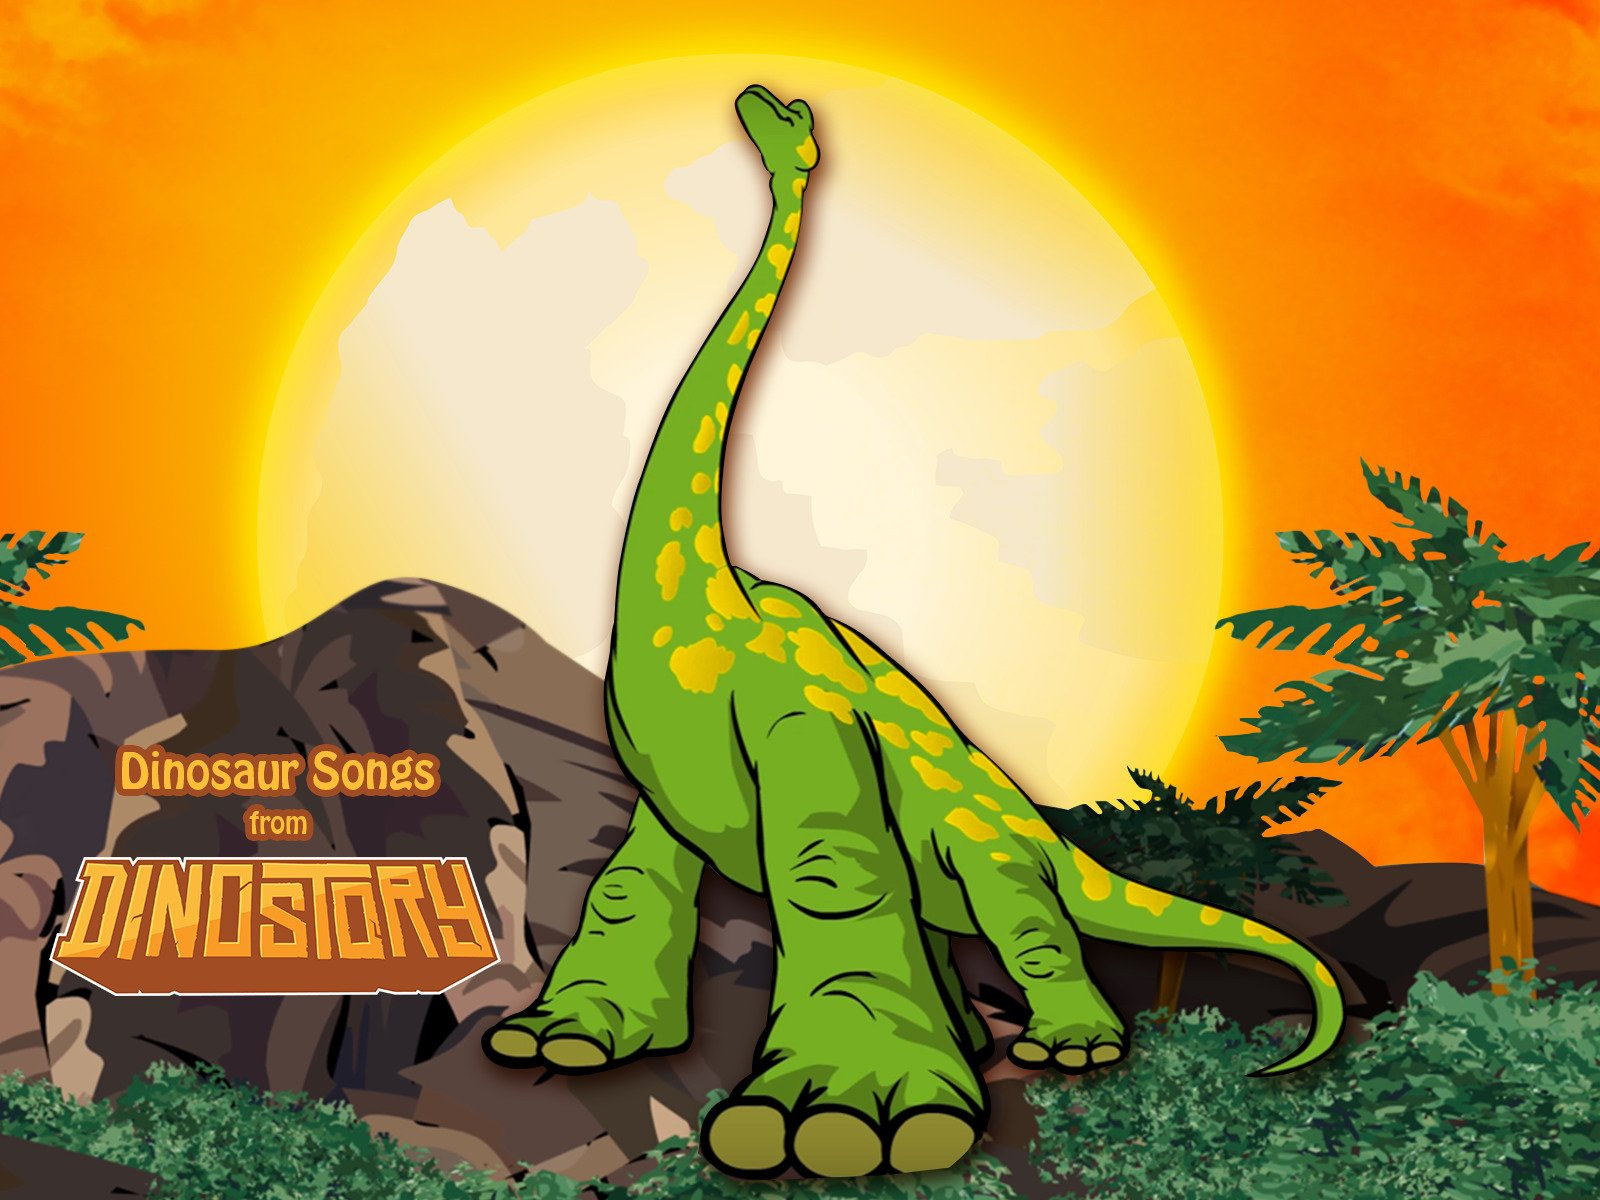 Dinosaur Songs from Dinostory - Season 1